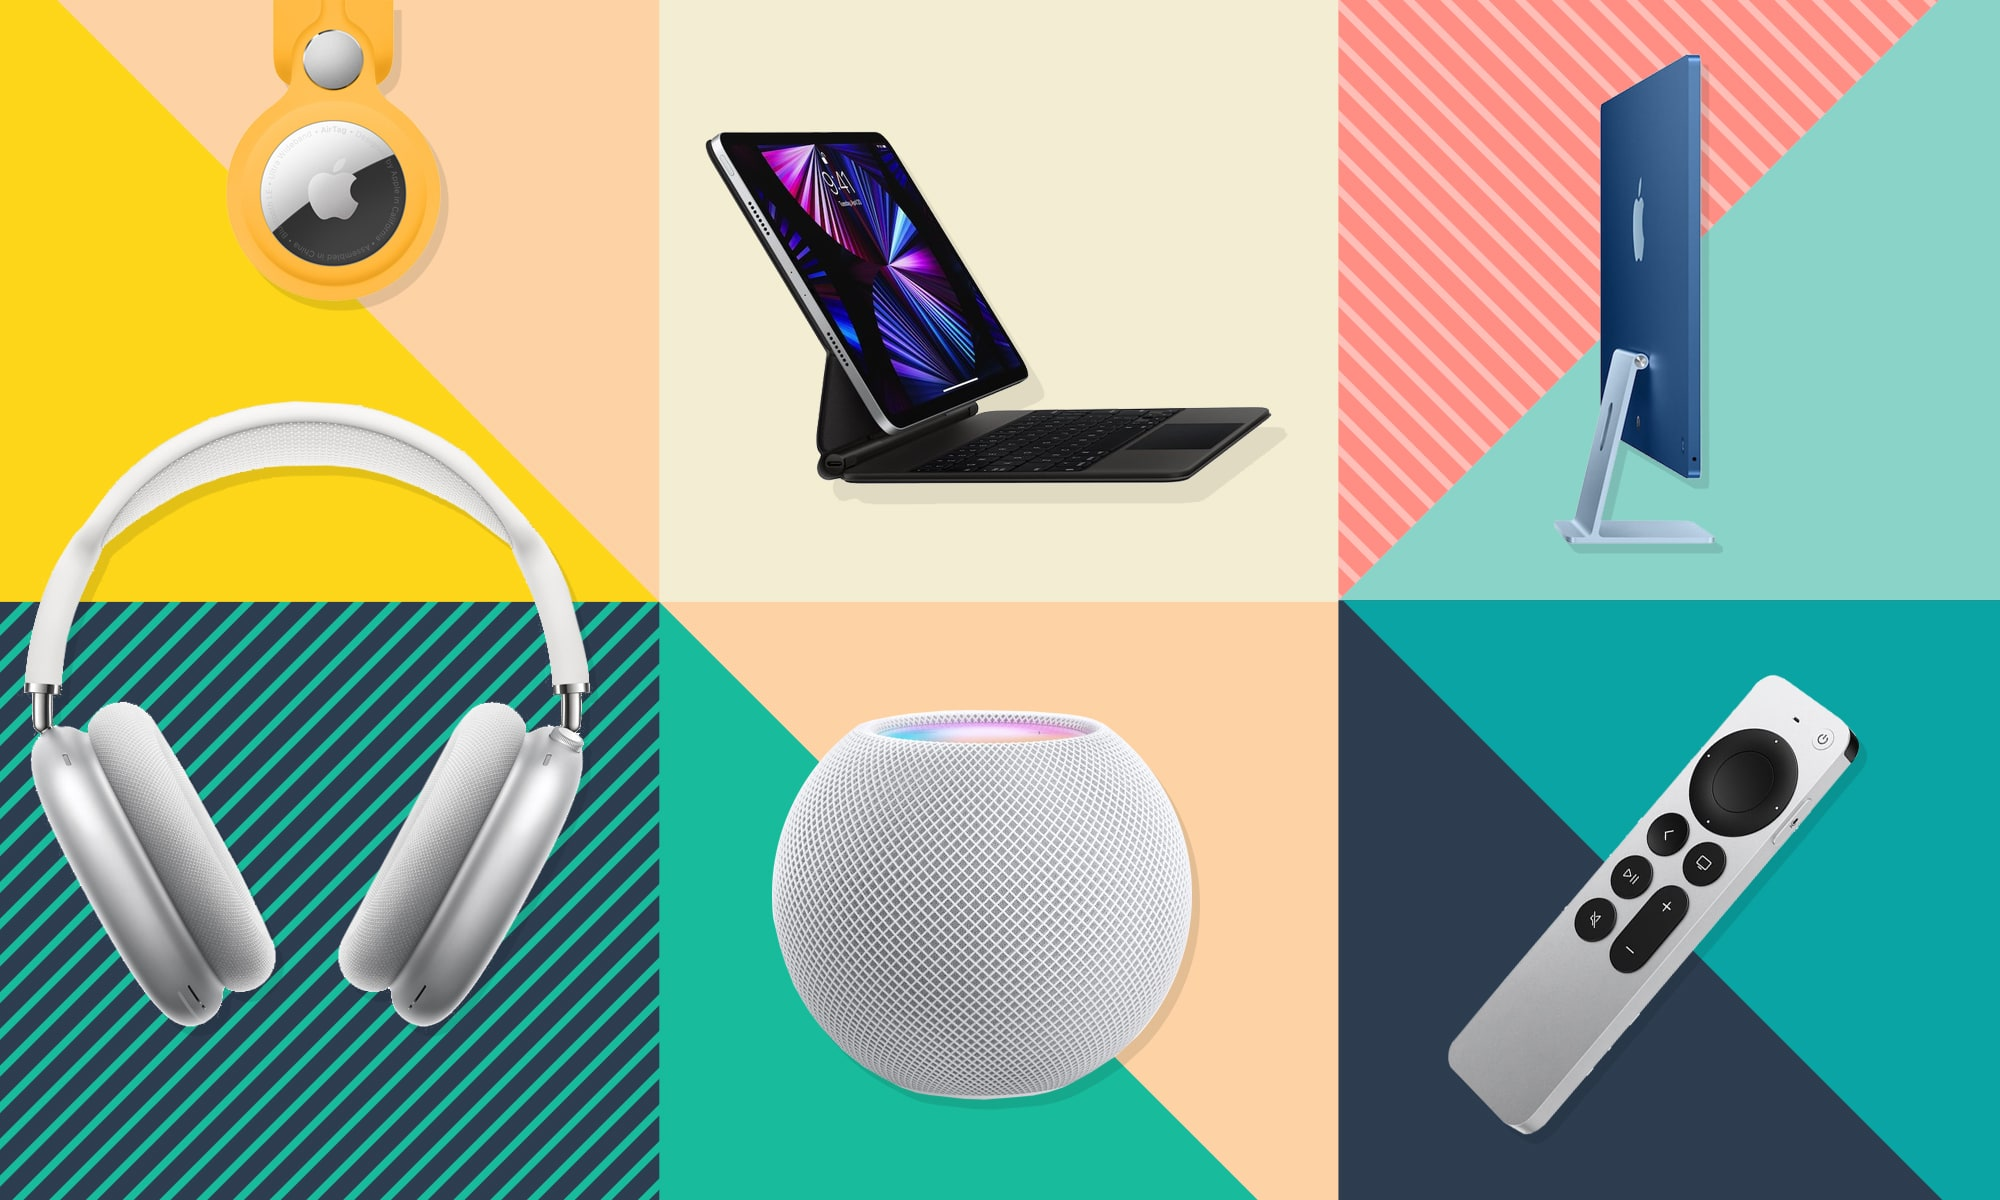 The best Apple gadgets and accessories to buy in 2021—stands, cases, chargers, etc.